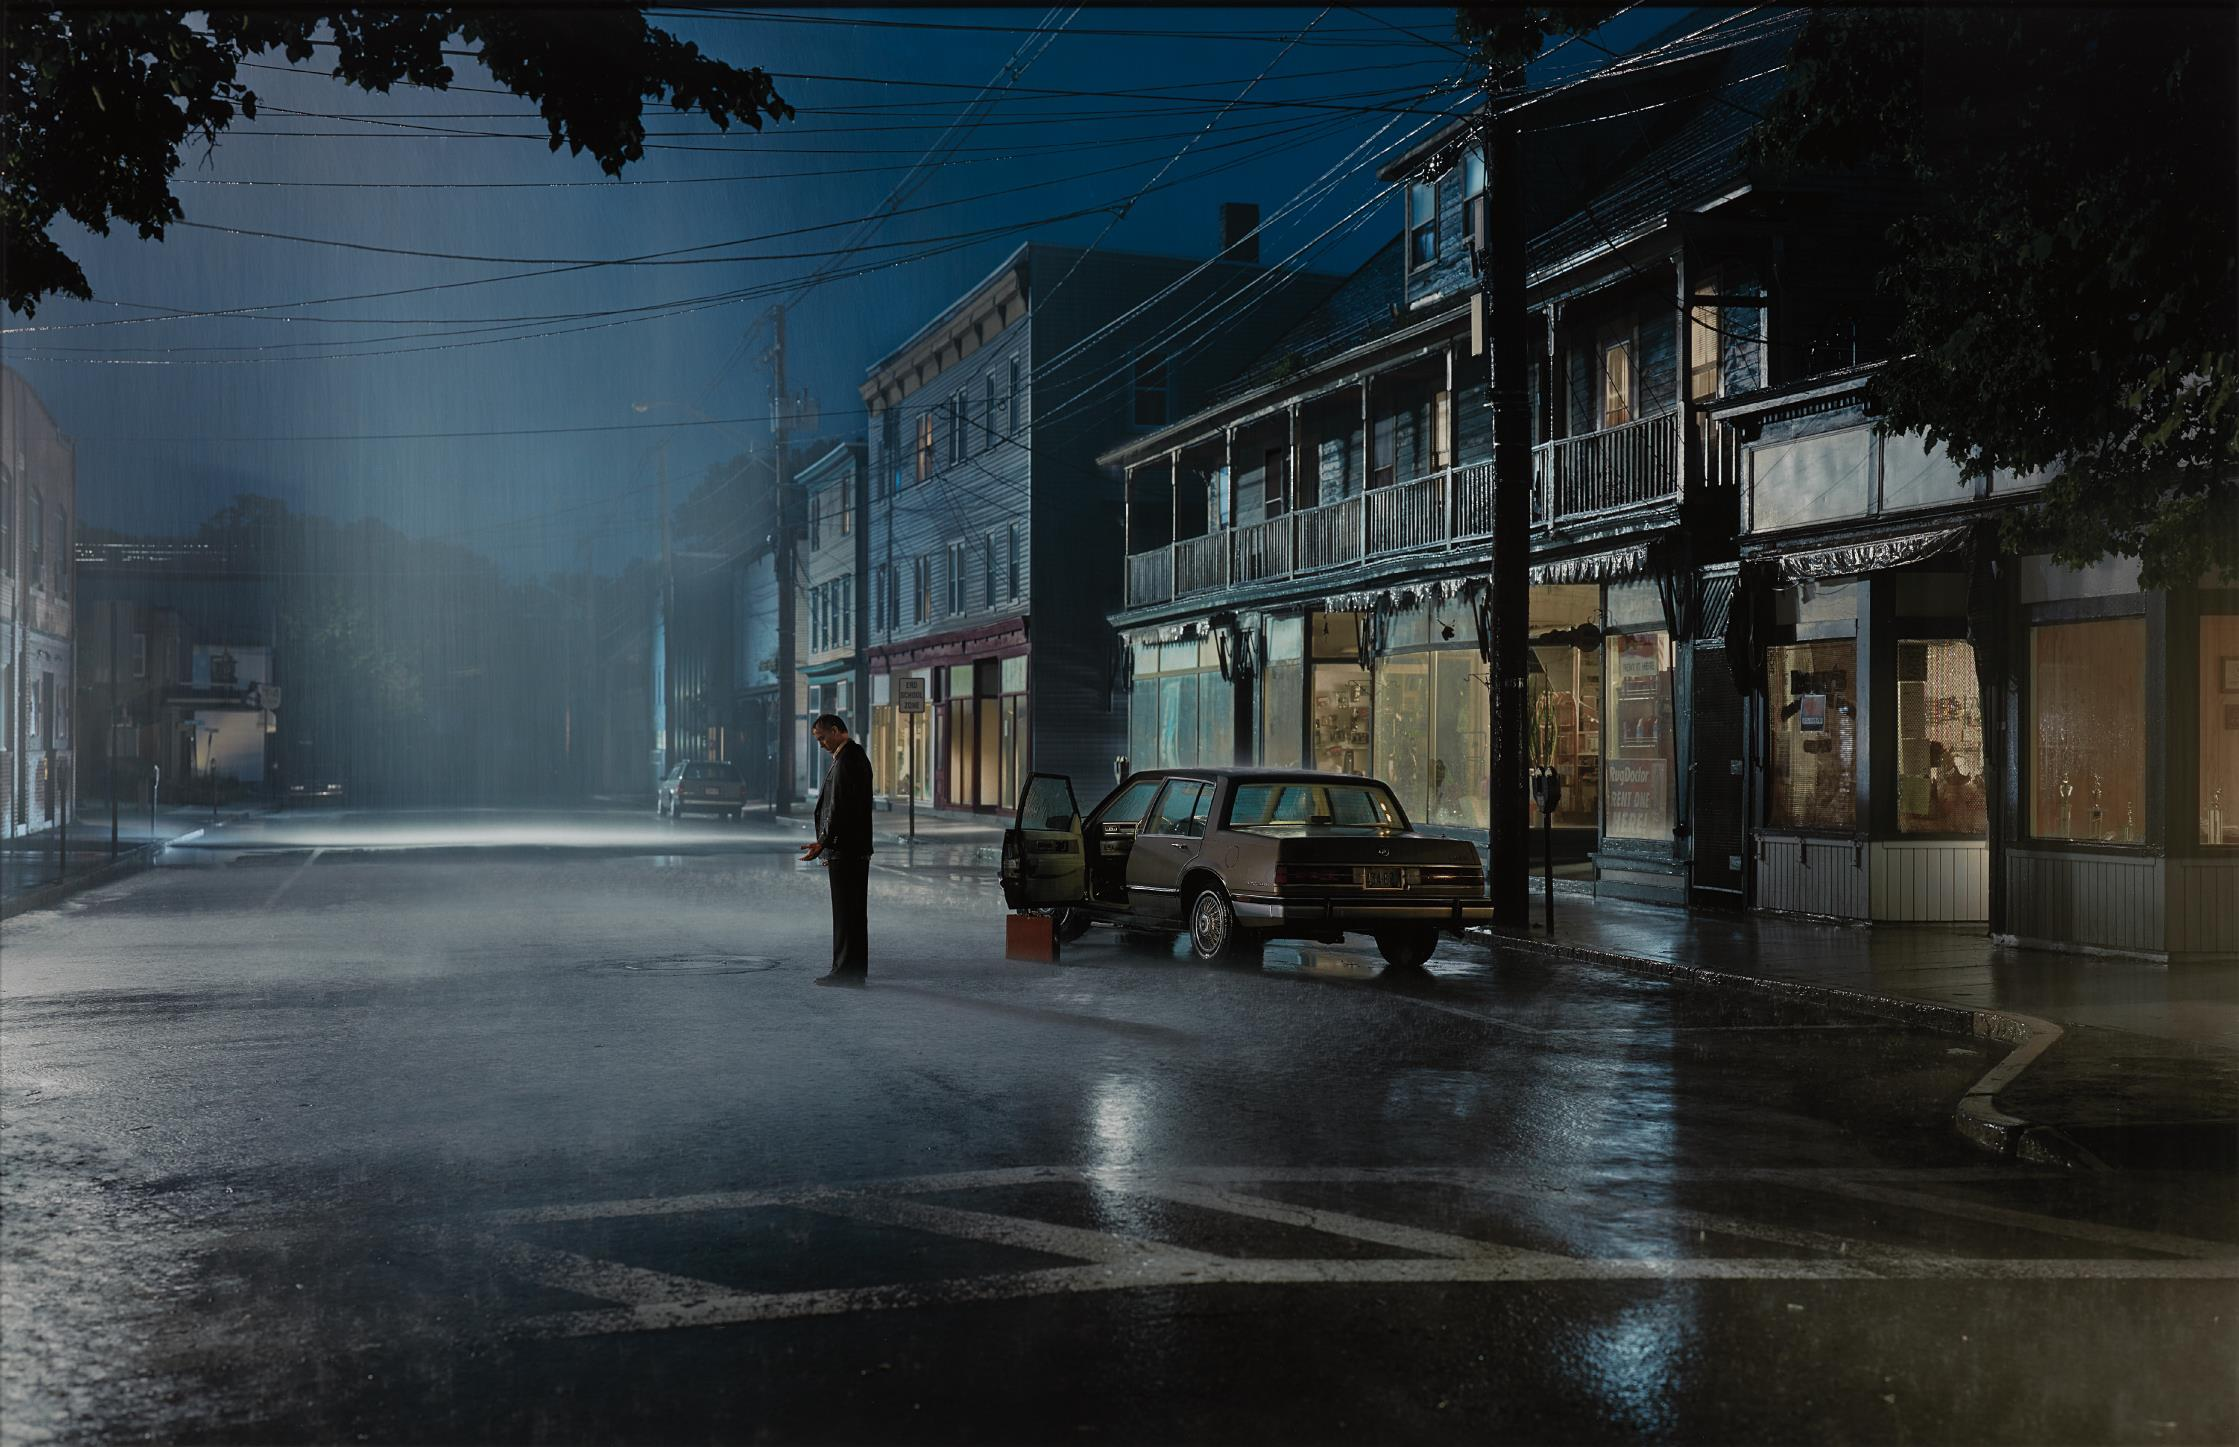 Gregory Crewdson-Untitled, Summer (Summer Rain) from the series Beneath the Roses-2004